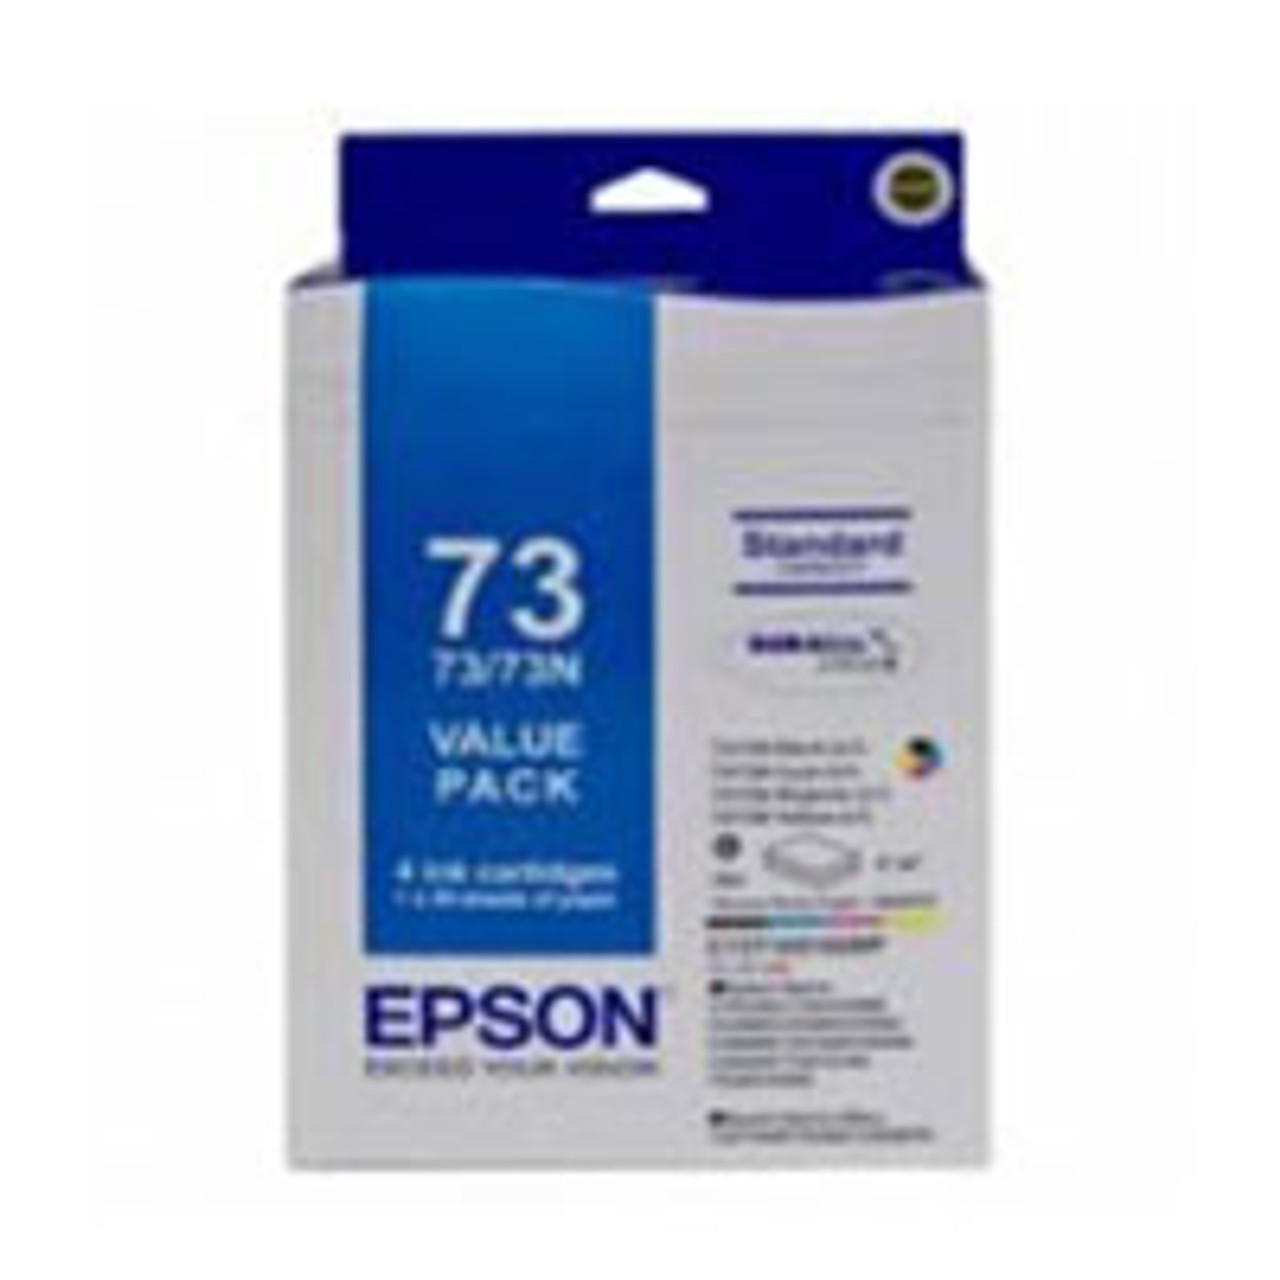 Image for Epson 73N - Standard Capacity DURABrite Ultra - Ink Cartridge Value Pack CX Computer Superstore